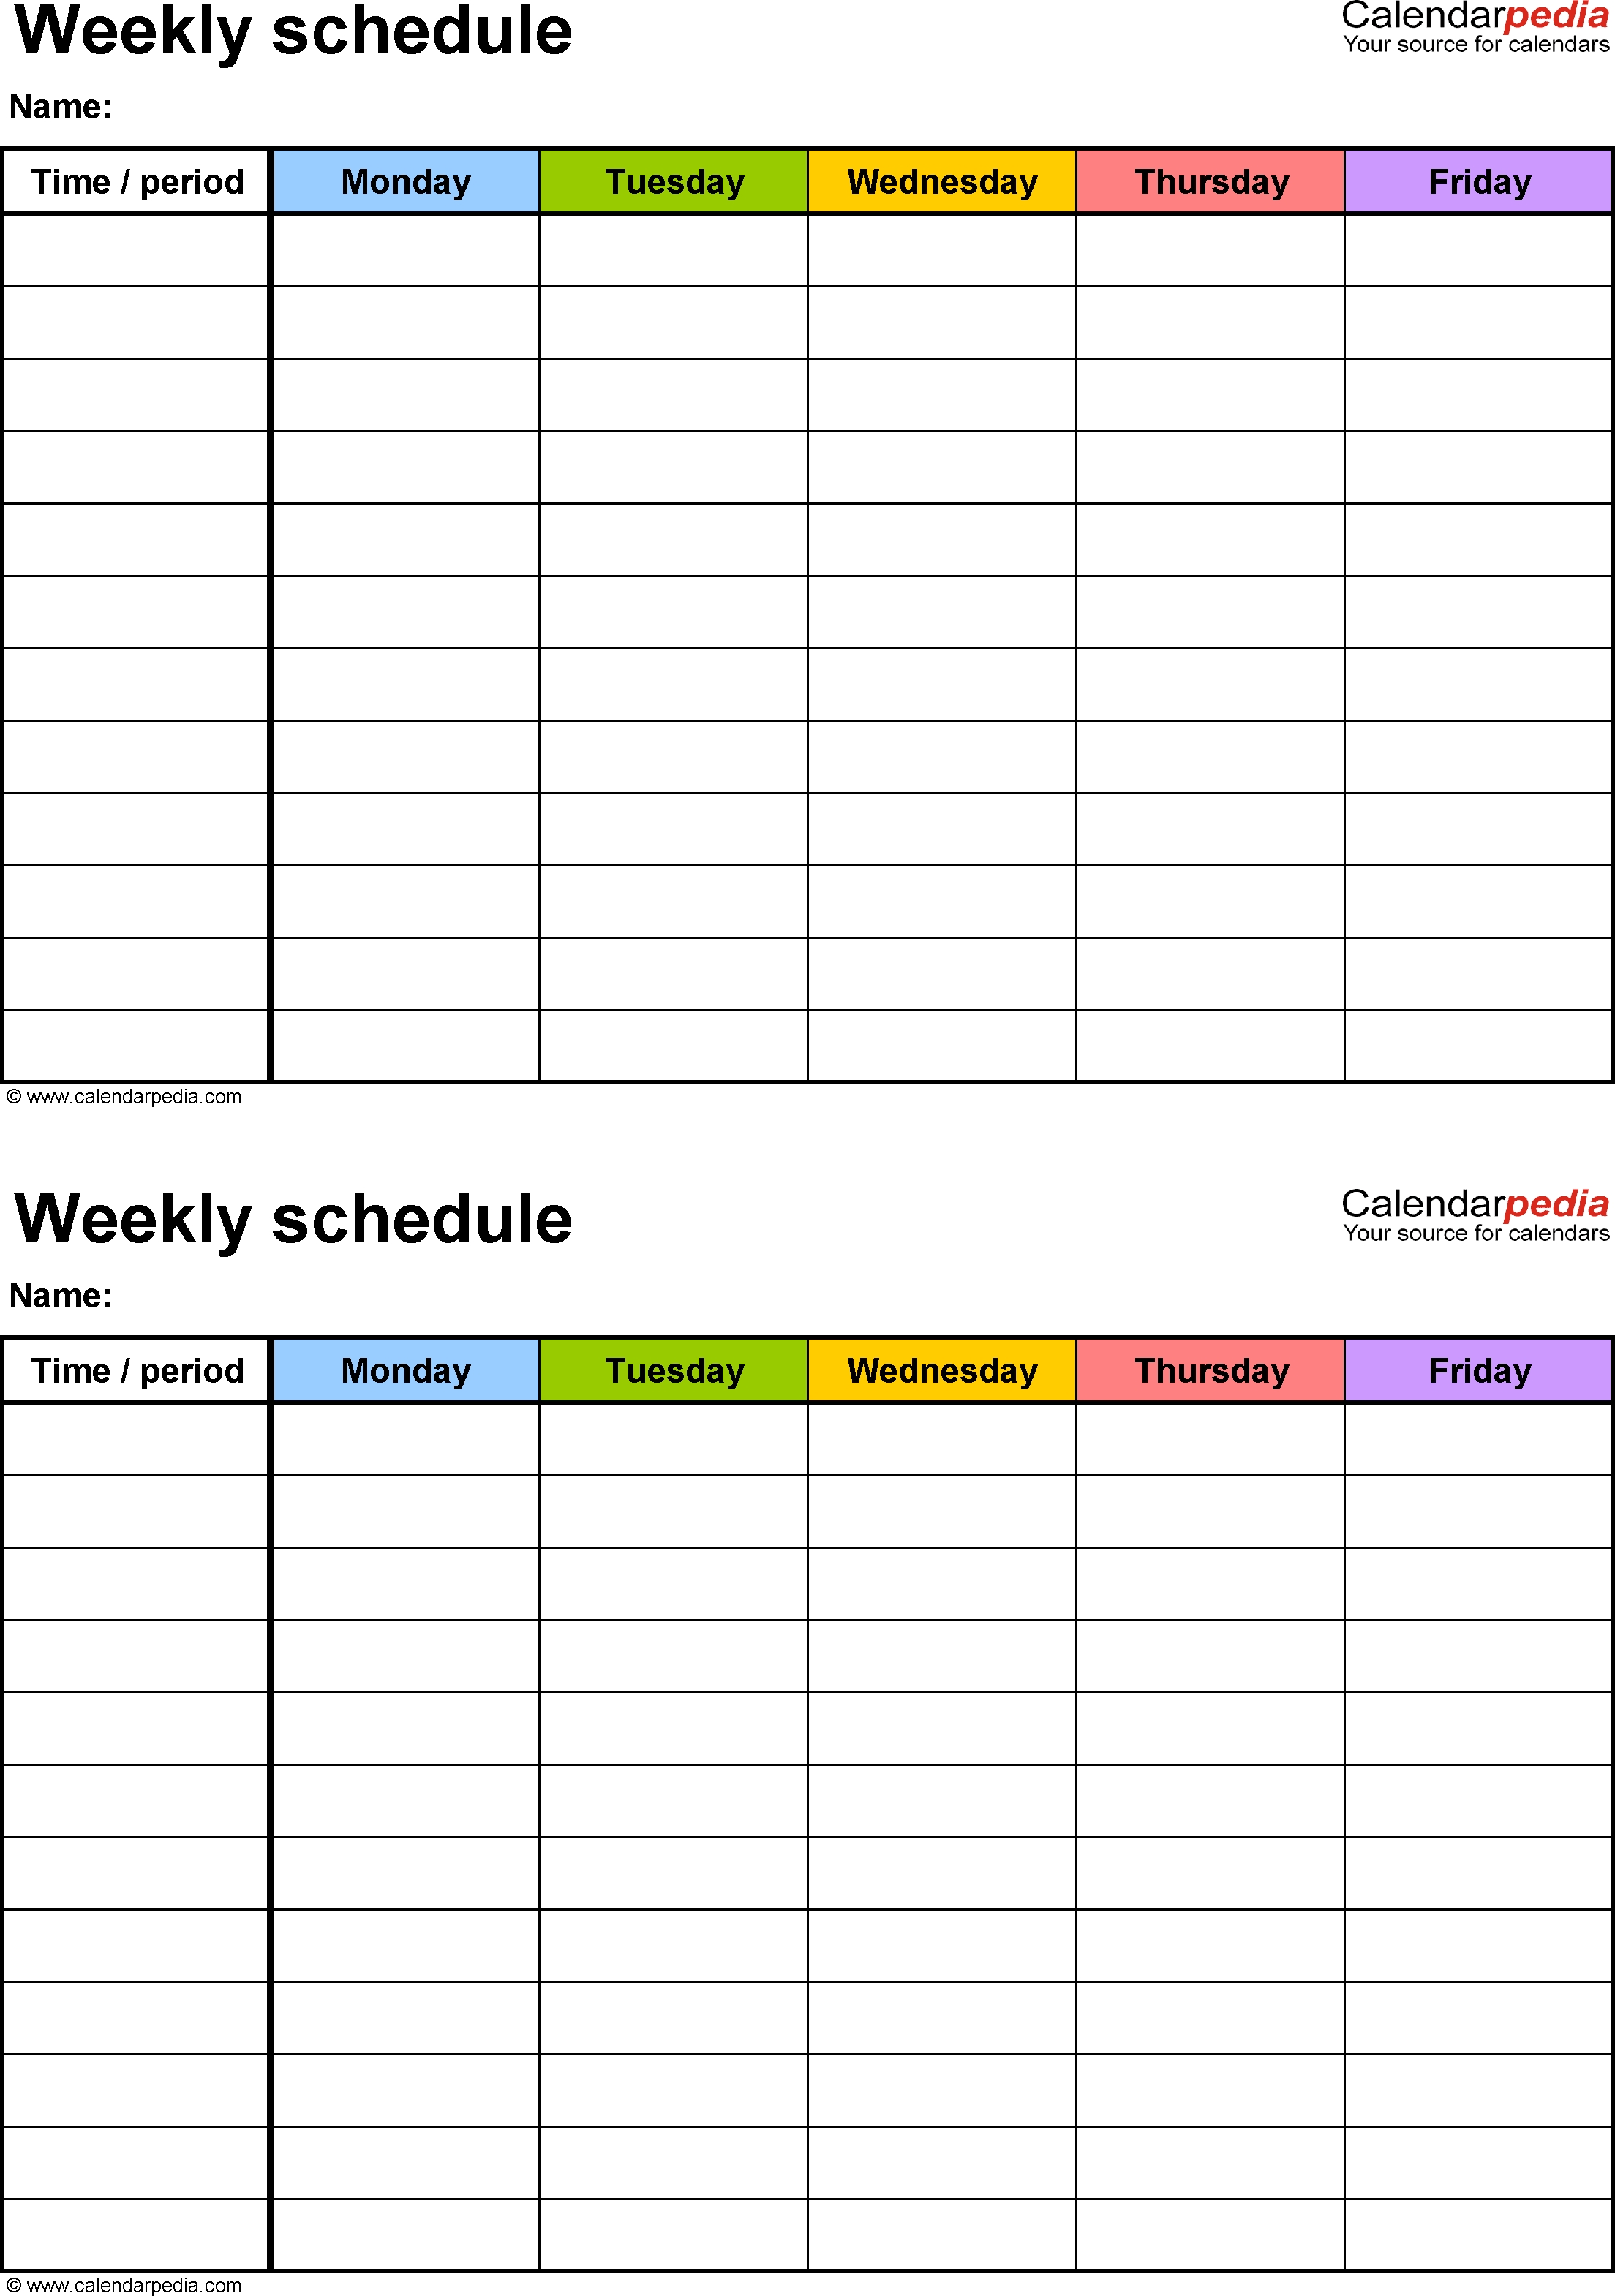 Weekly Schedule Template For Pdf Version 3 2 Schedules On One  Xjb